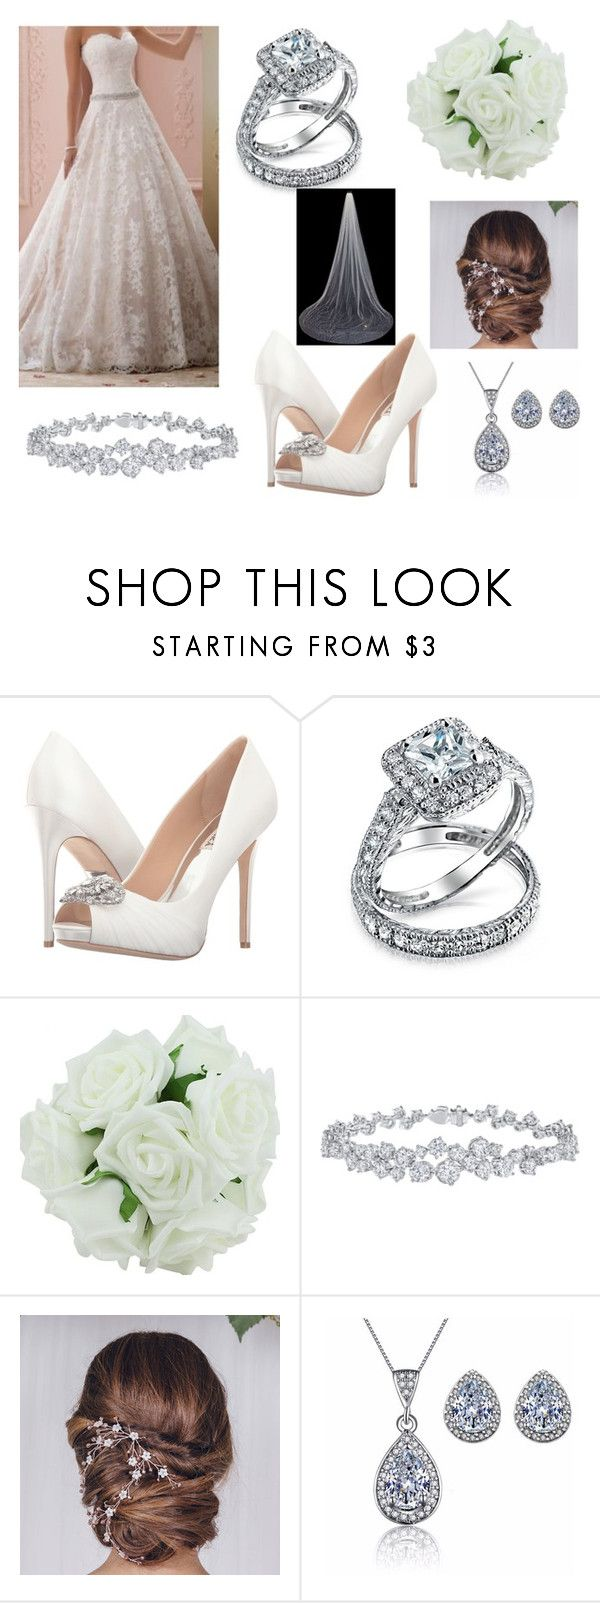 """""""Maddie's wedding"""" by smithy-32 ❤ liked on Polyvore featuring Badgley Mischka, Bling Jewelry and Harry Winston"""